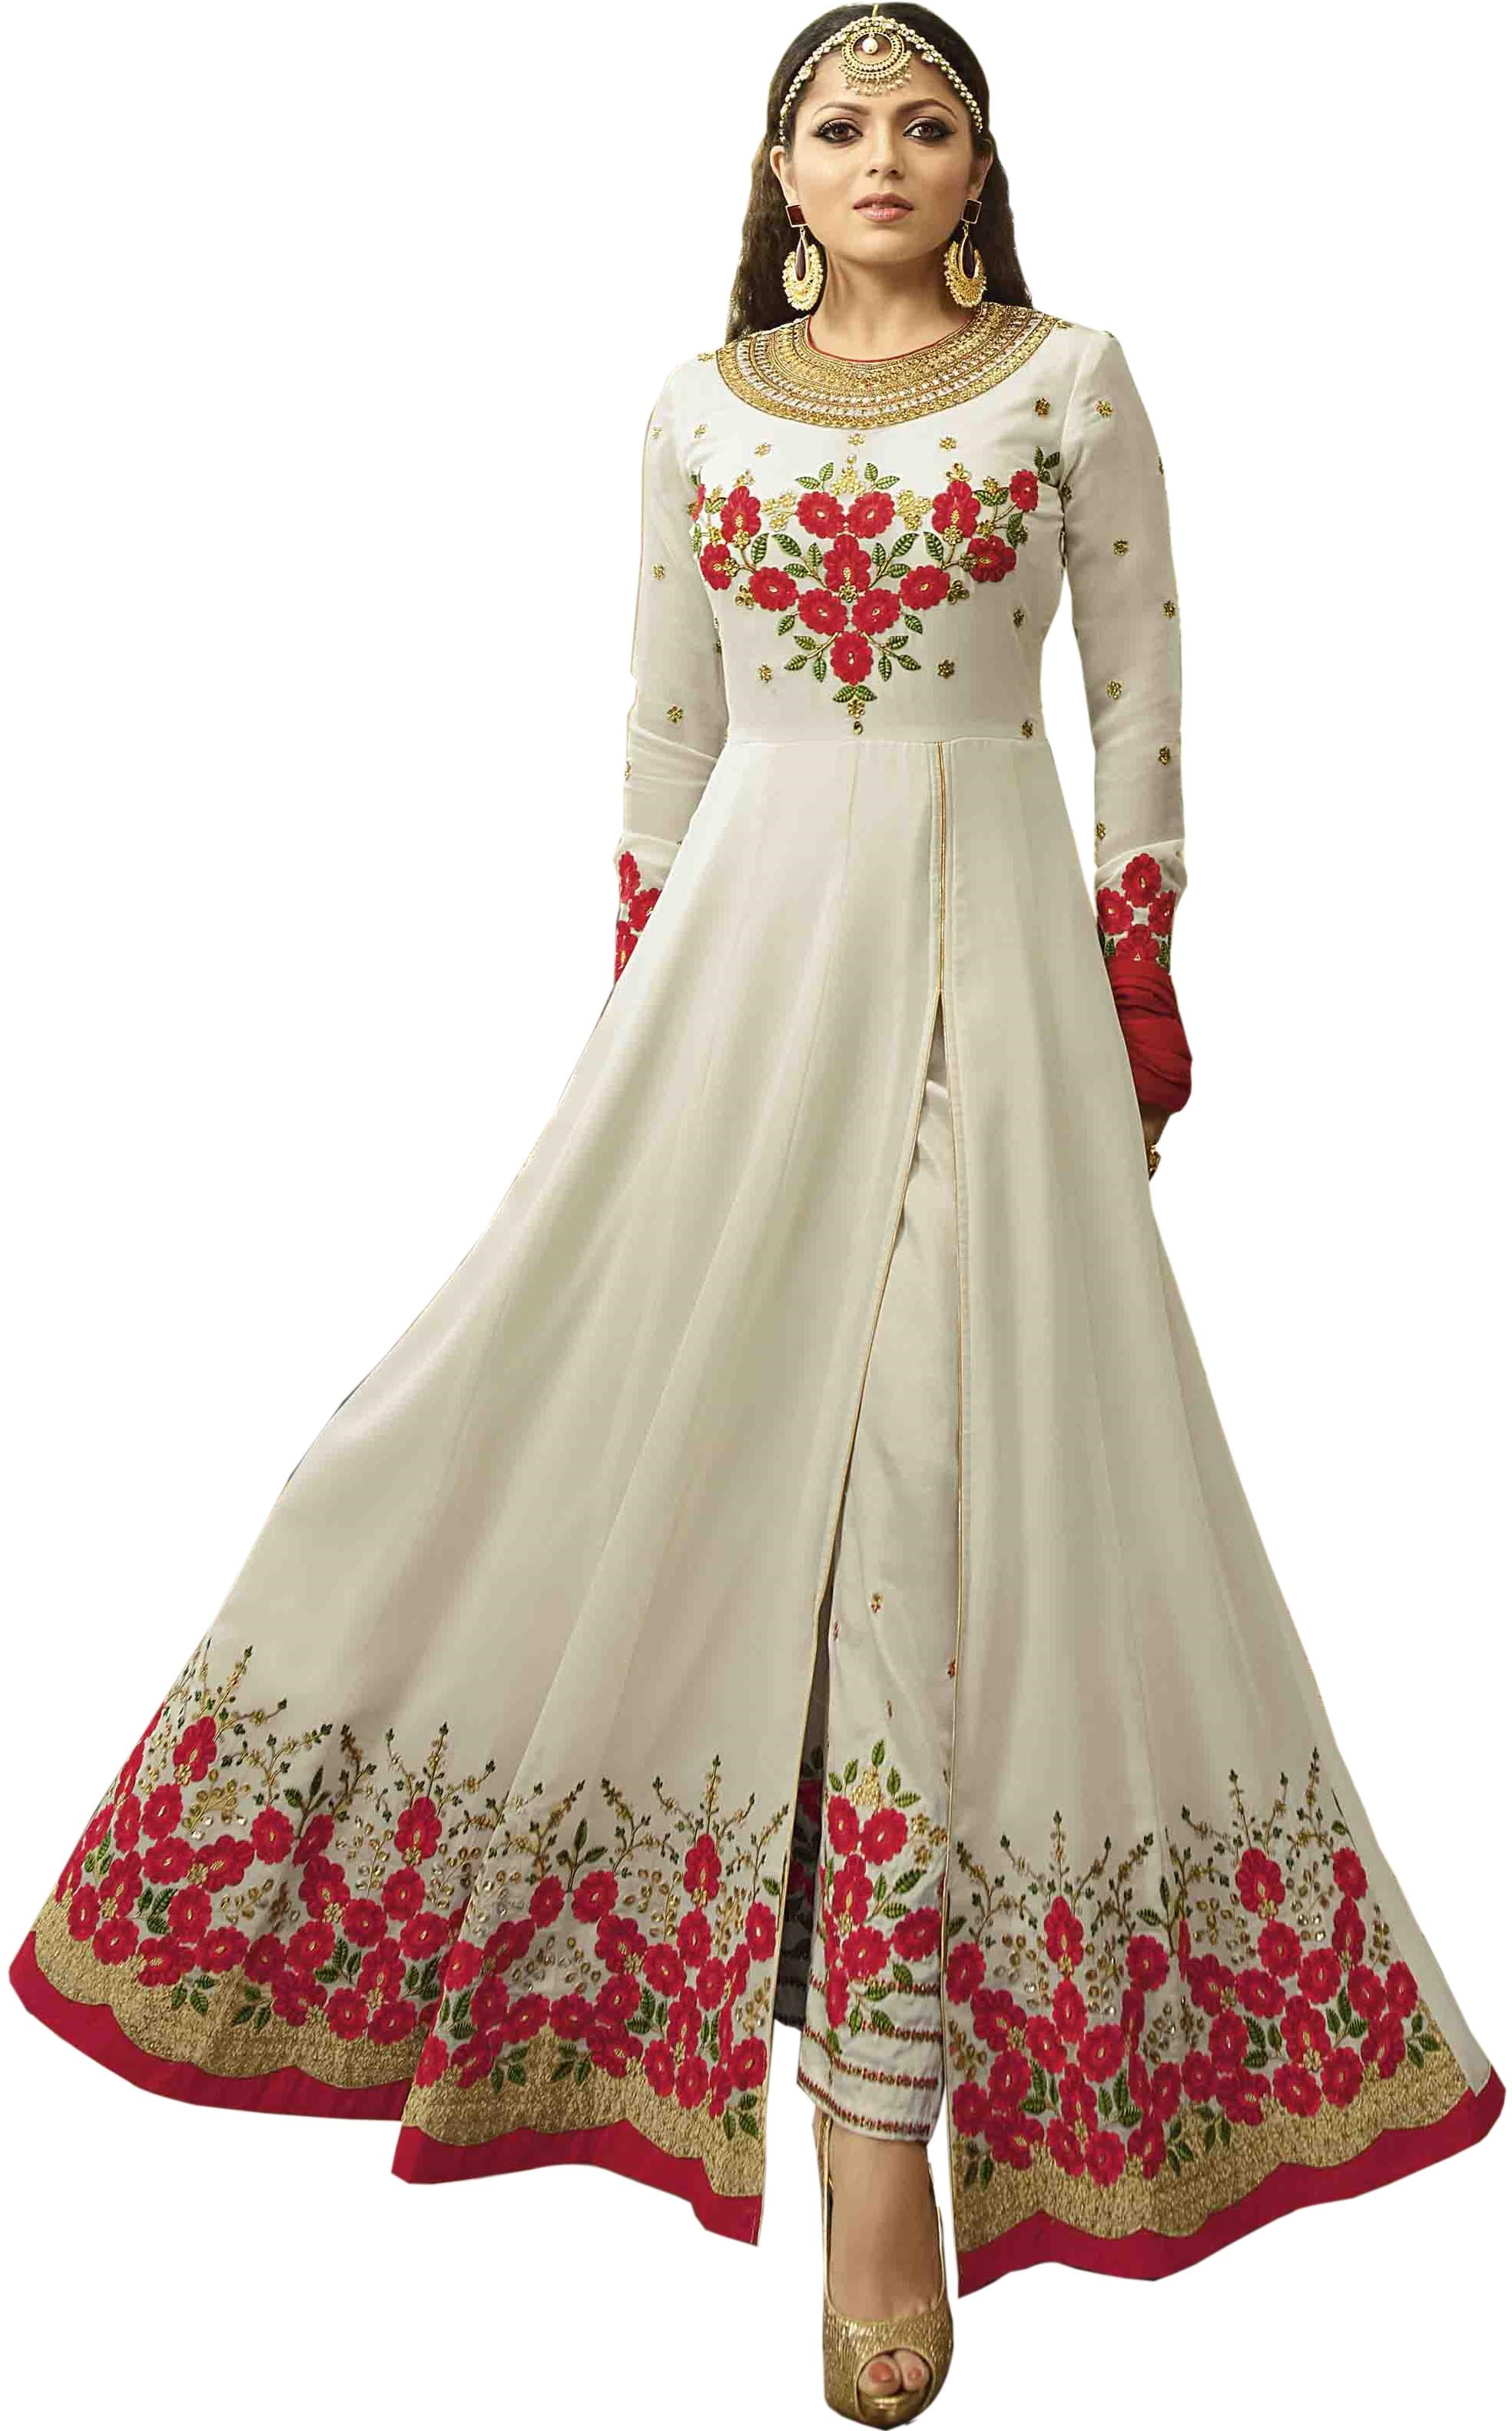 7e046db182 White Color Heavy Embroidered Work Faux Georgette Salwar Suit Dupatta  Anarkali Gown - Divine International Trading Co - 2668589